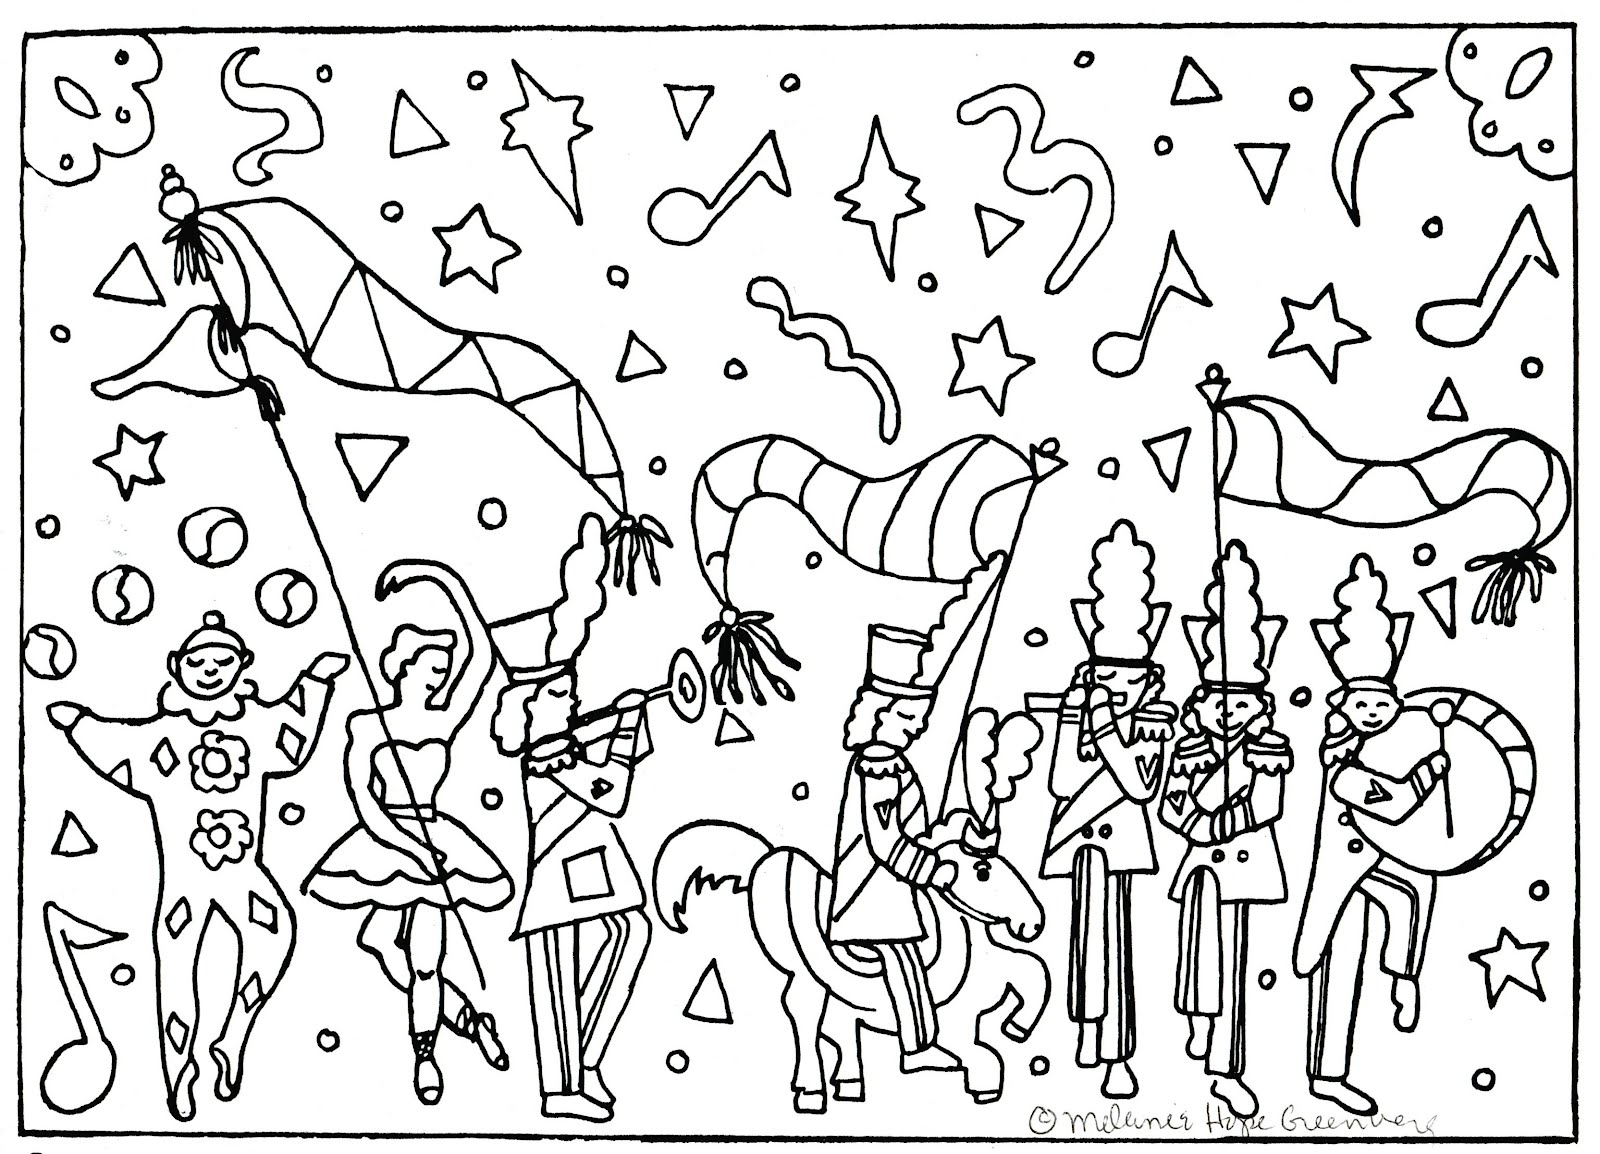 Spring coloring pages for elementary students - Free Coloring Pages For Elementary Spring Coloring Pages For Elementary Students In Honor Of Spring